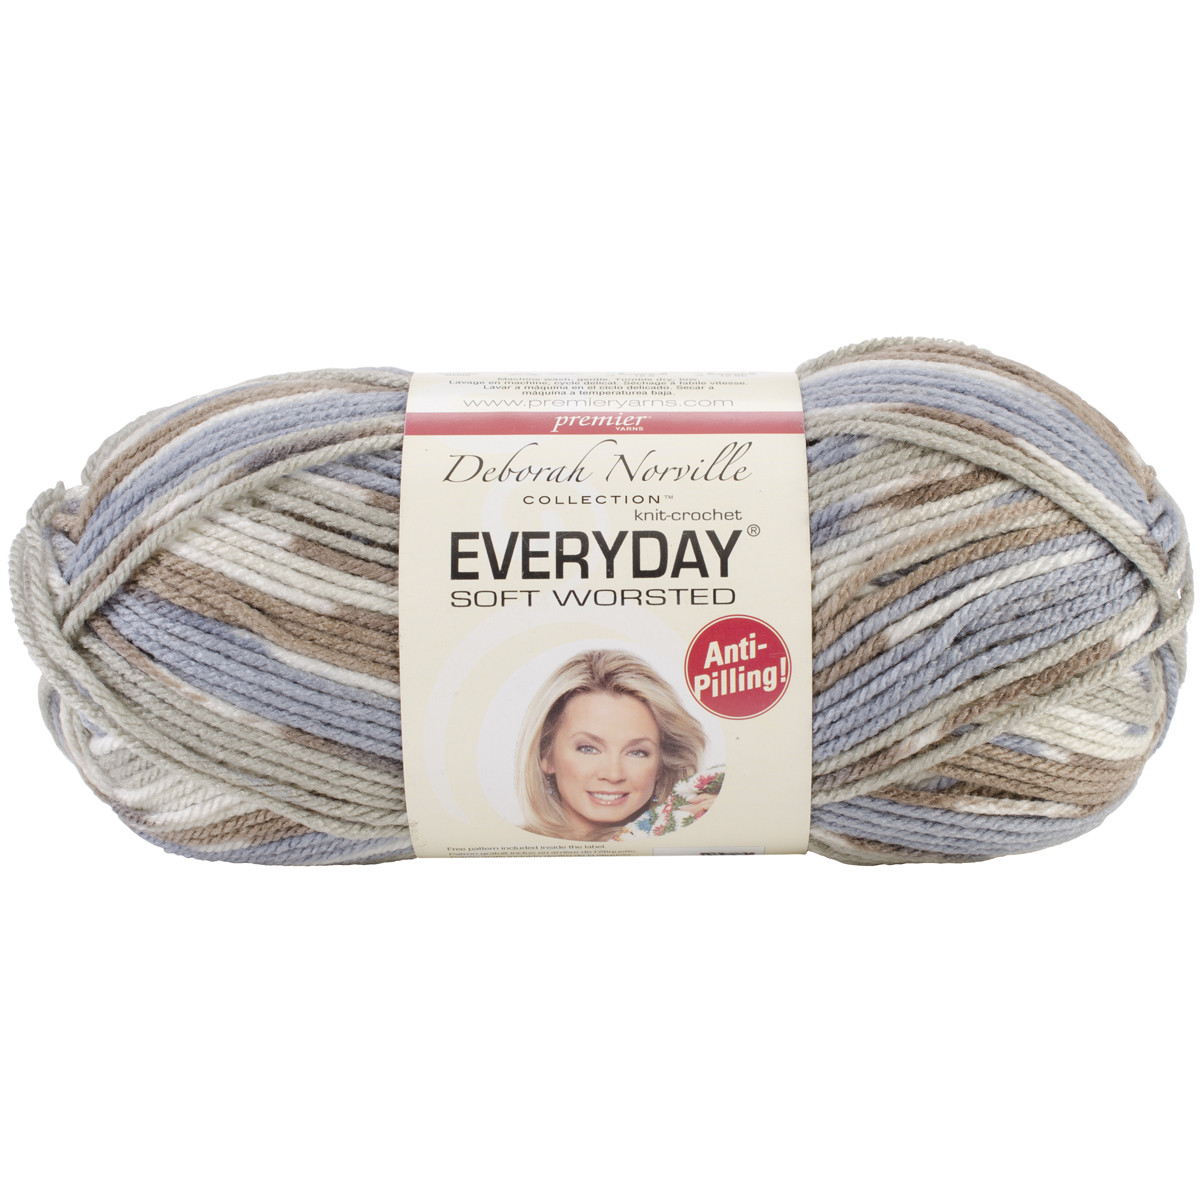 Deborah norville Yarn Best Of Deborah norville Collection Everyday Print Yarn Of Amazing 50 Pics Deborah norville Yarn